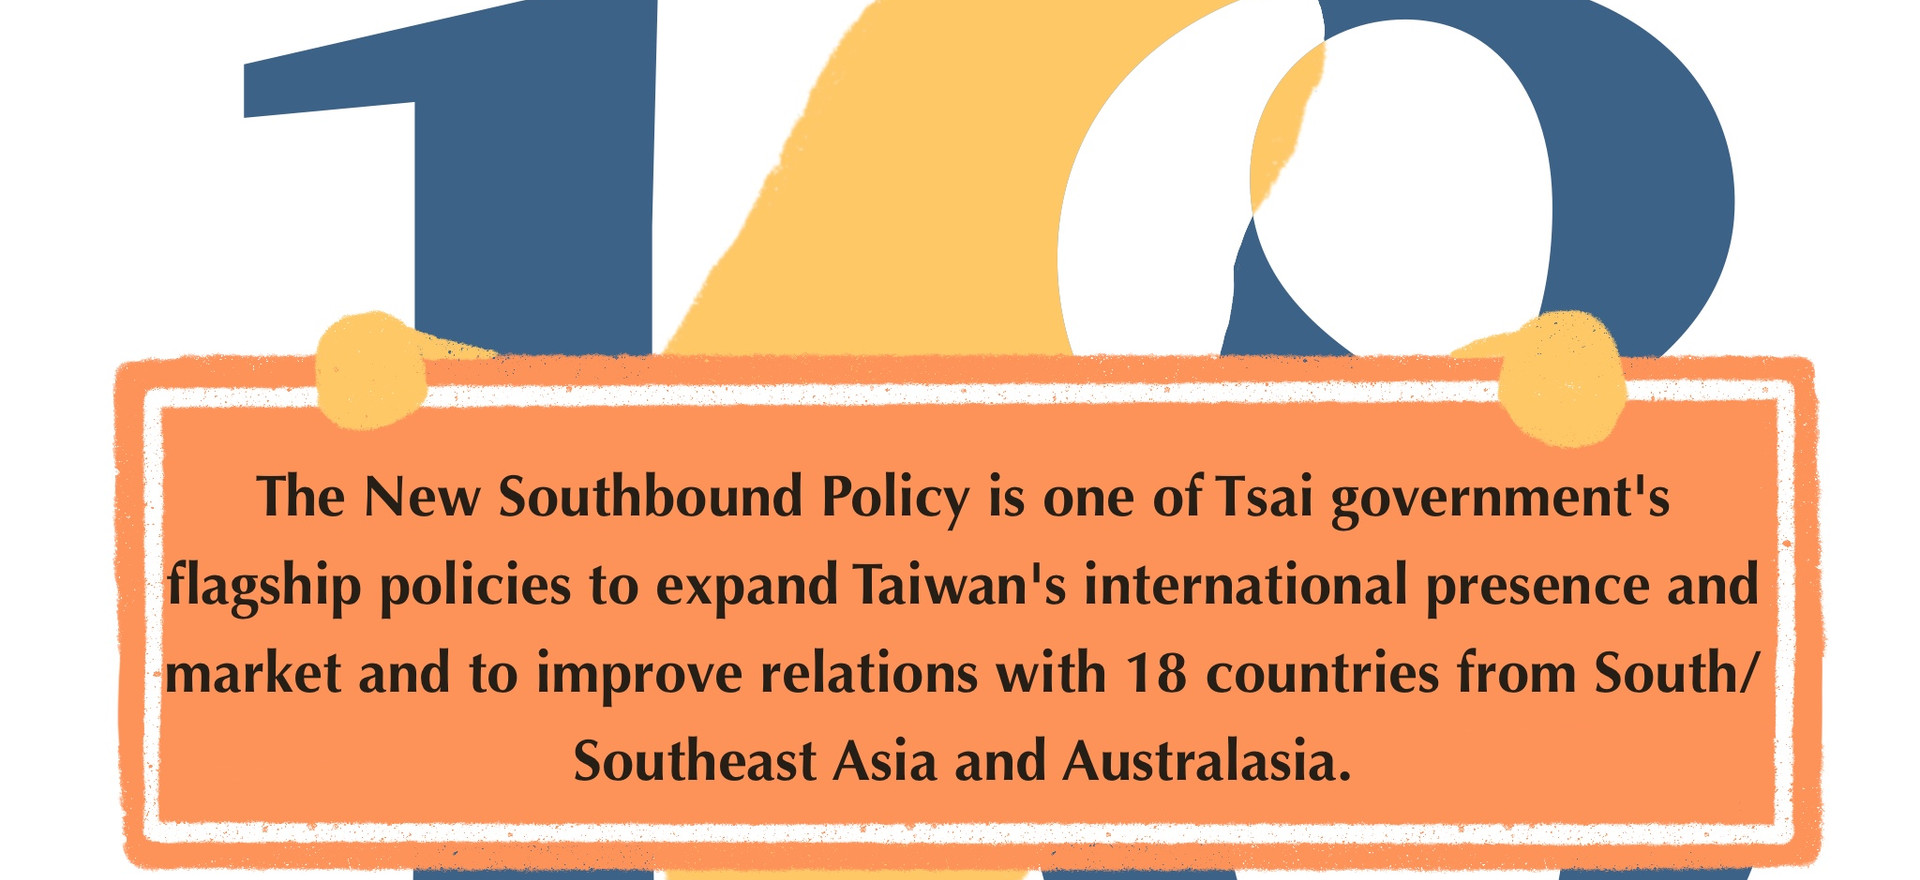 What is the New Southbound Policy?